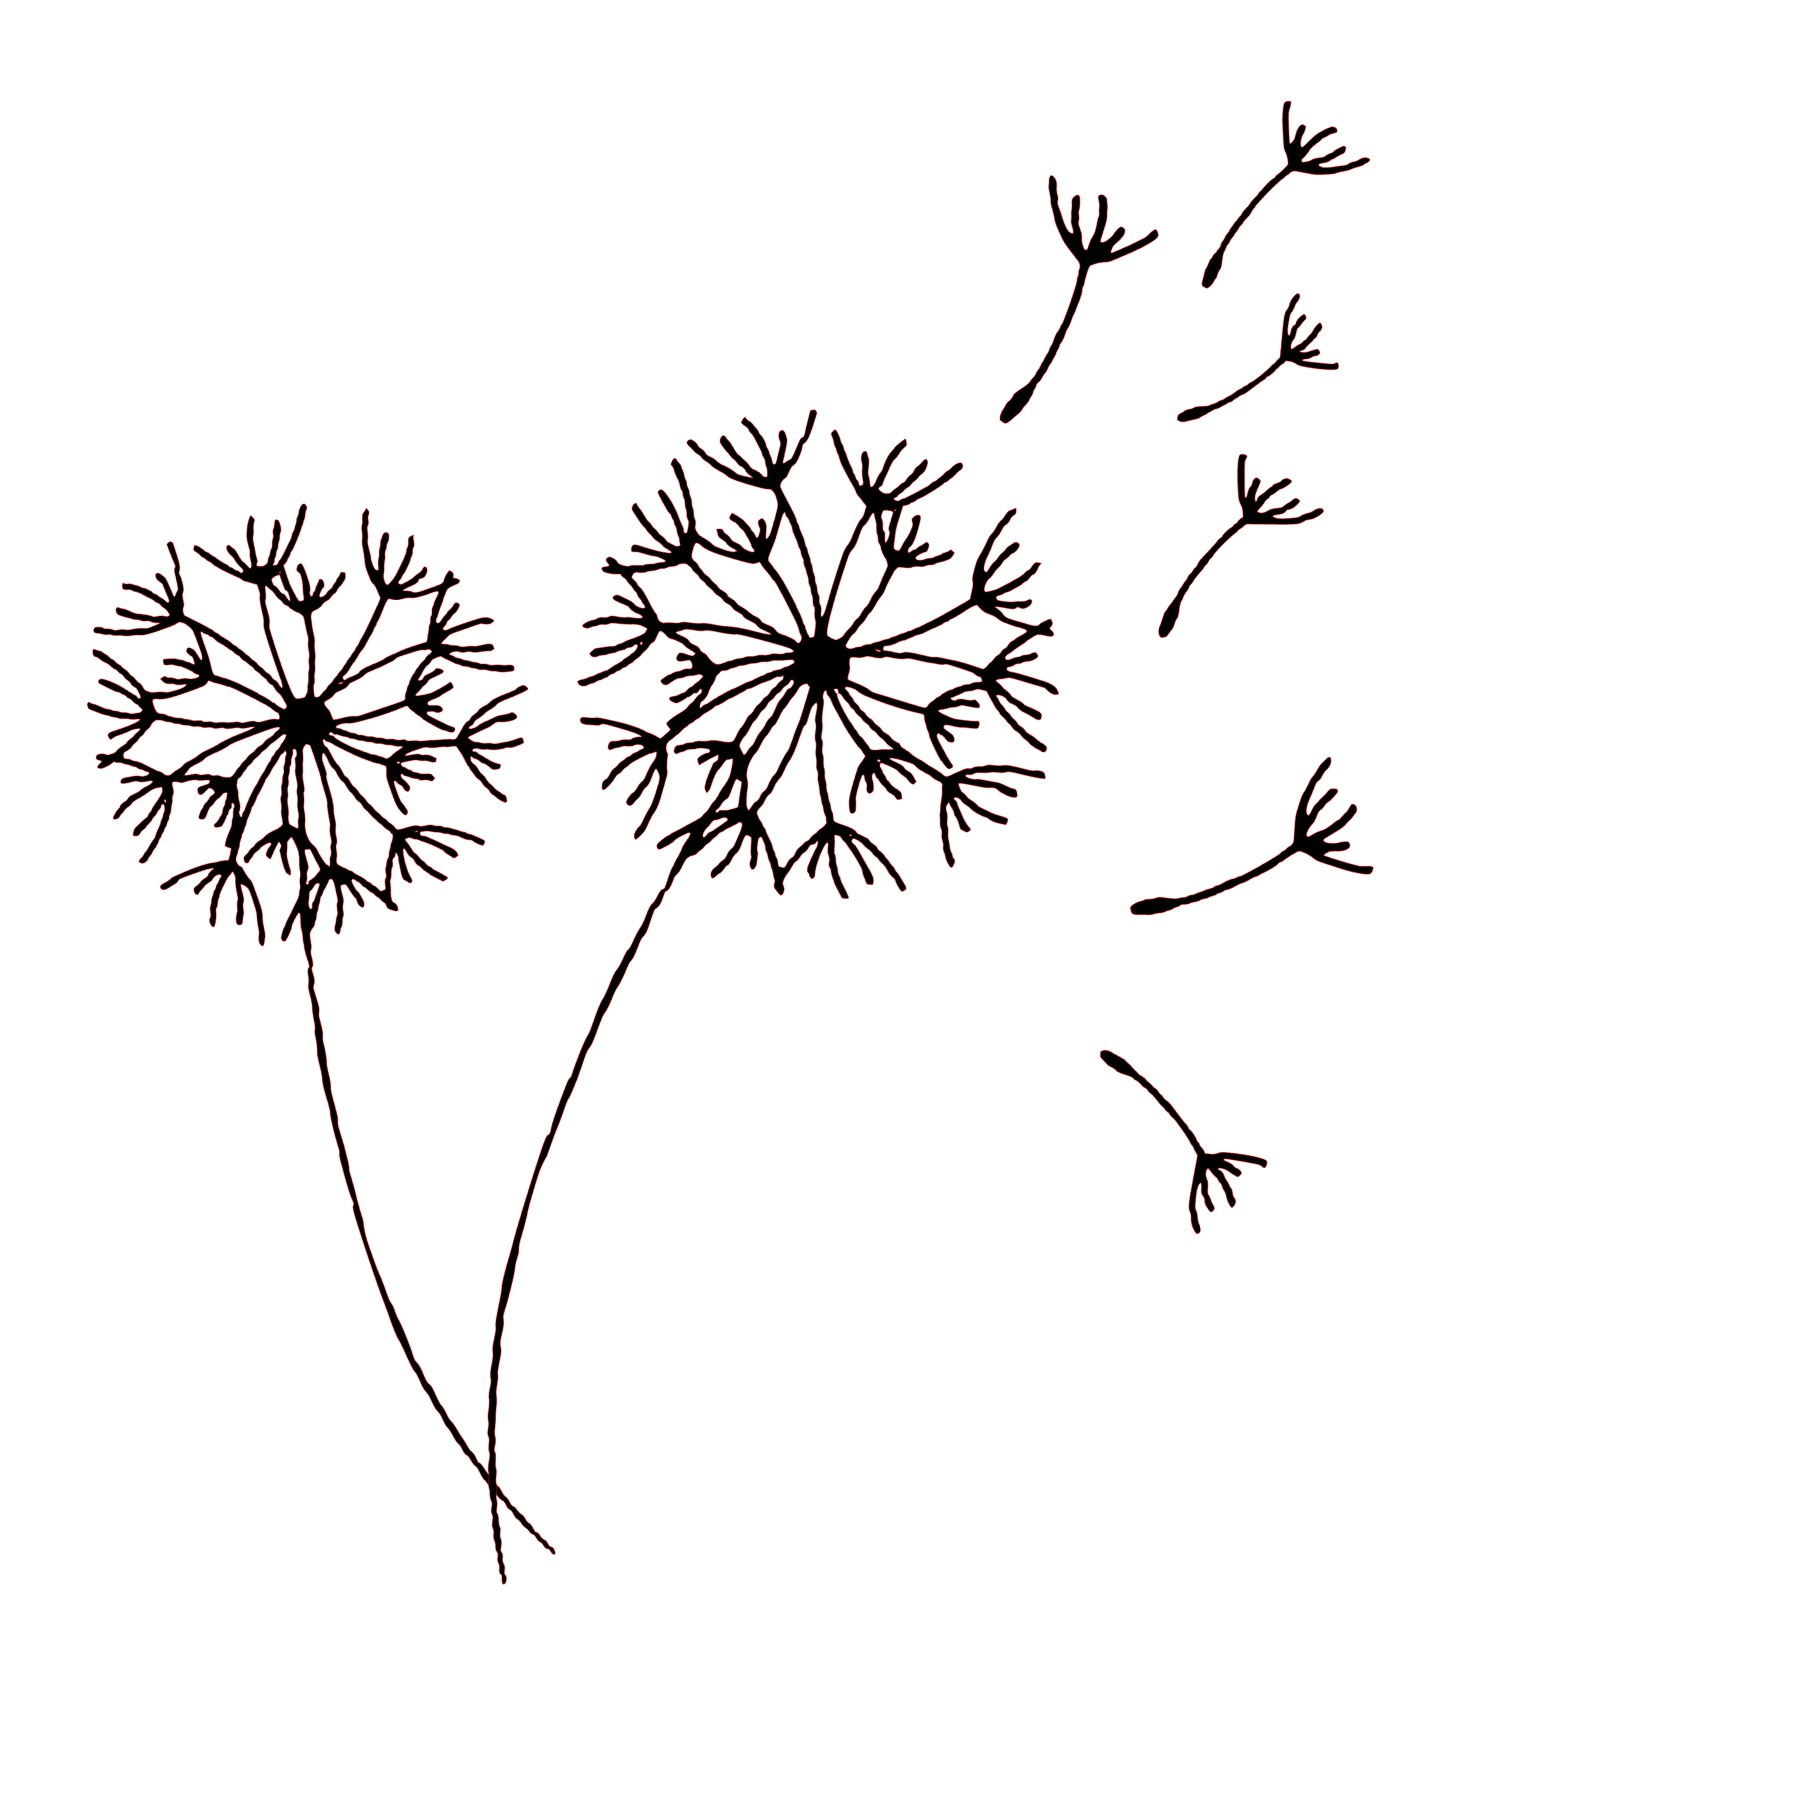 Dandelion SVG · JATDESIGNS · Online Store Powered by Storenvy